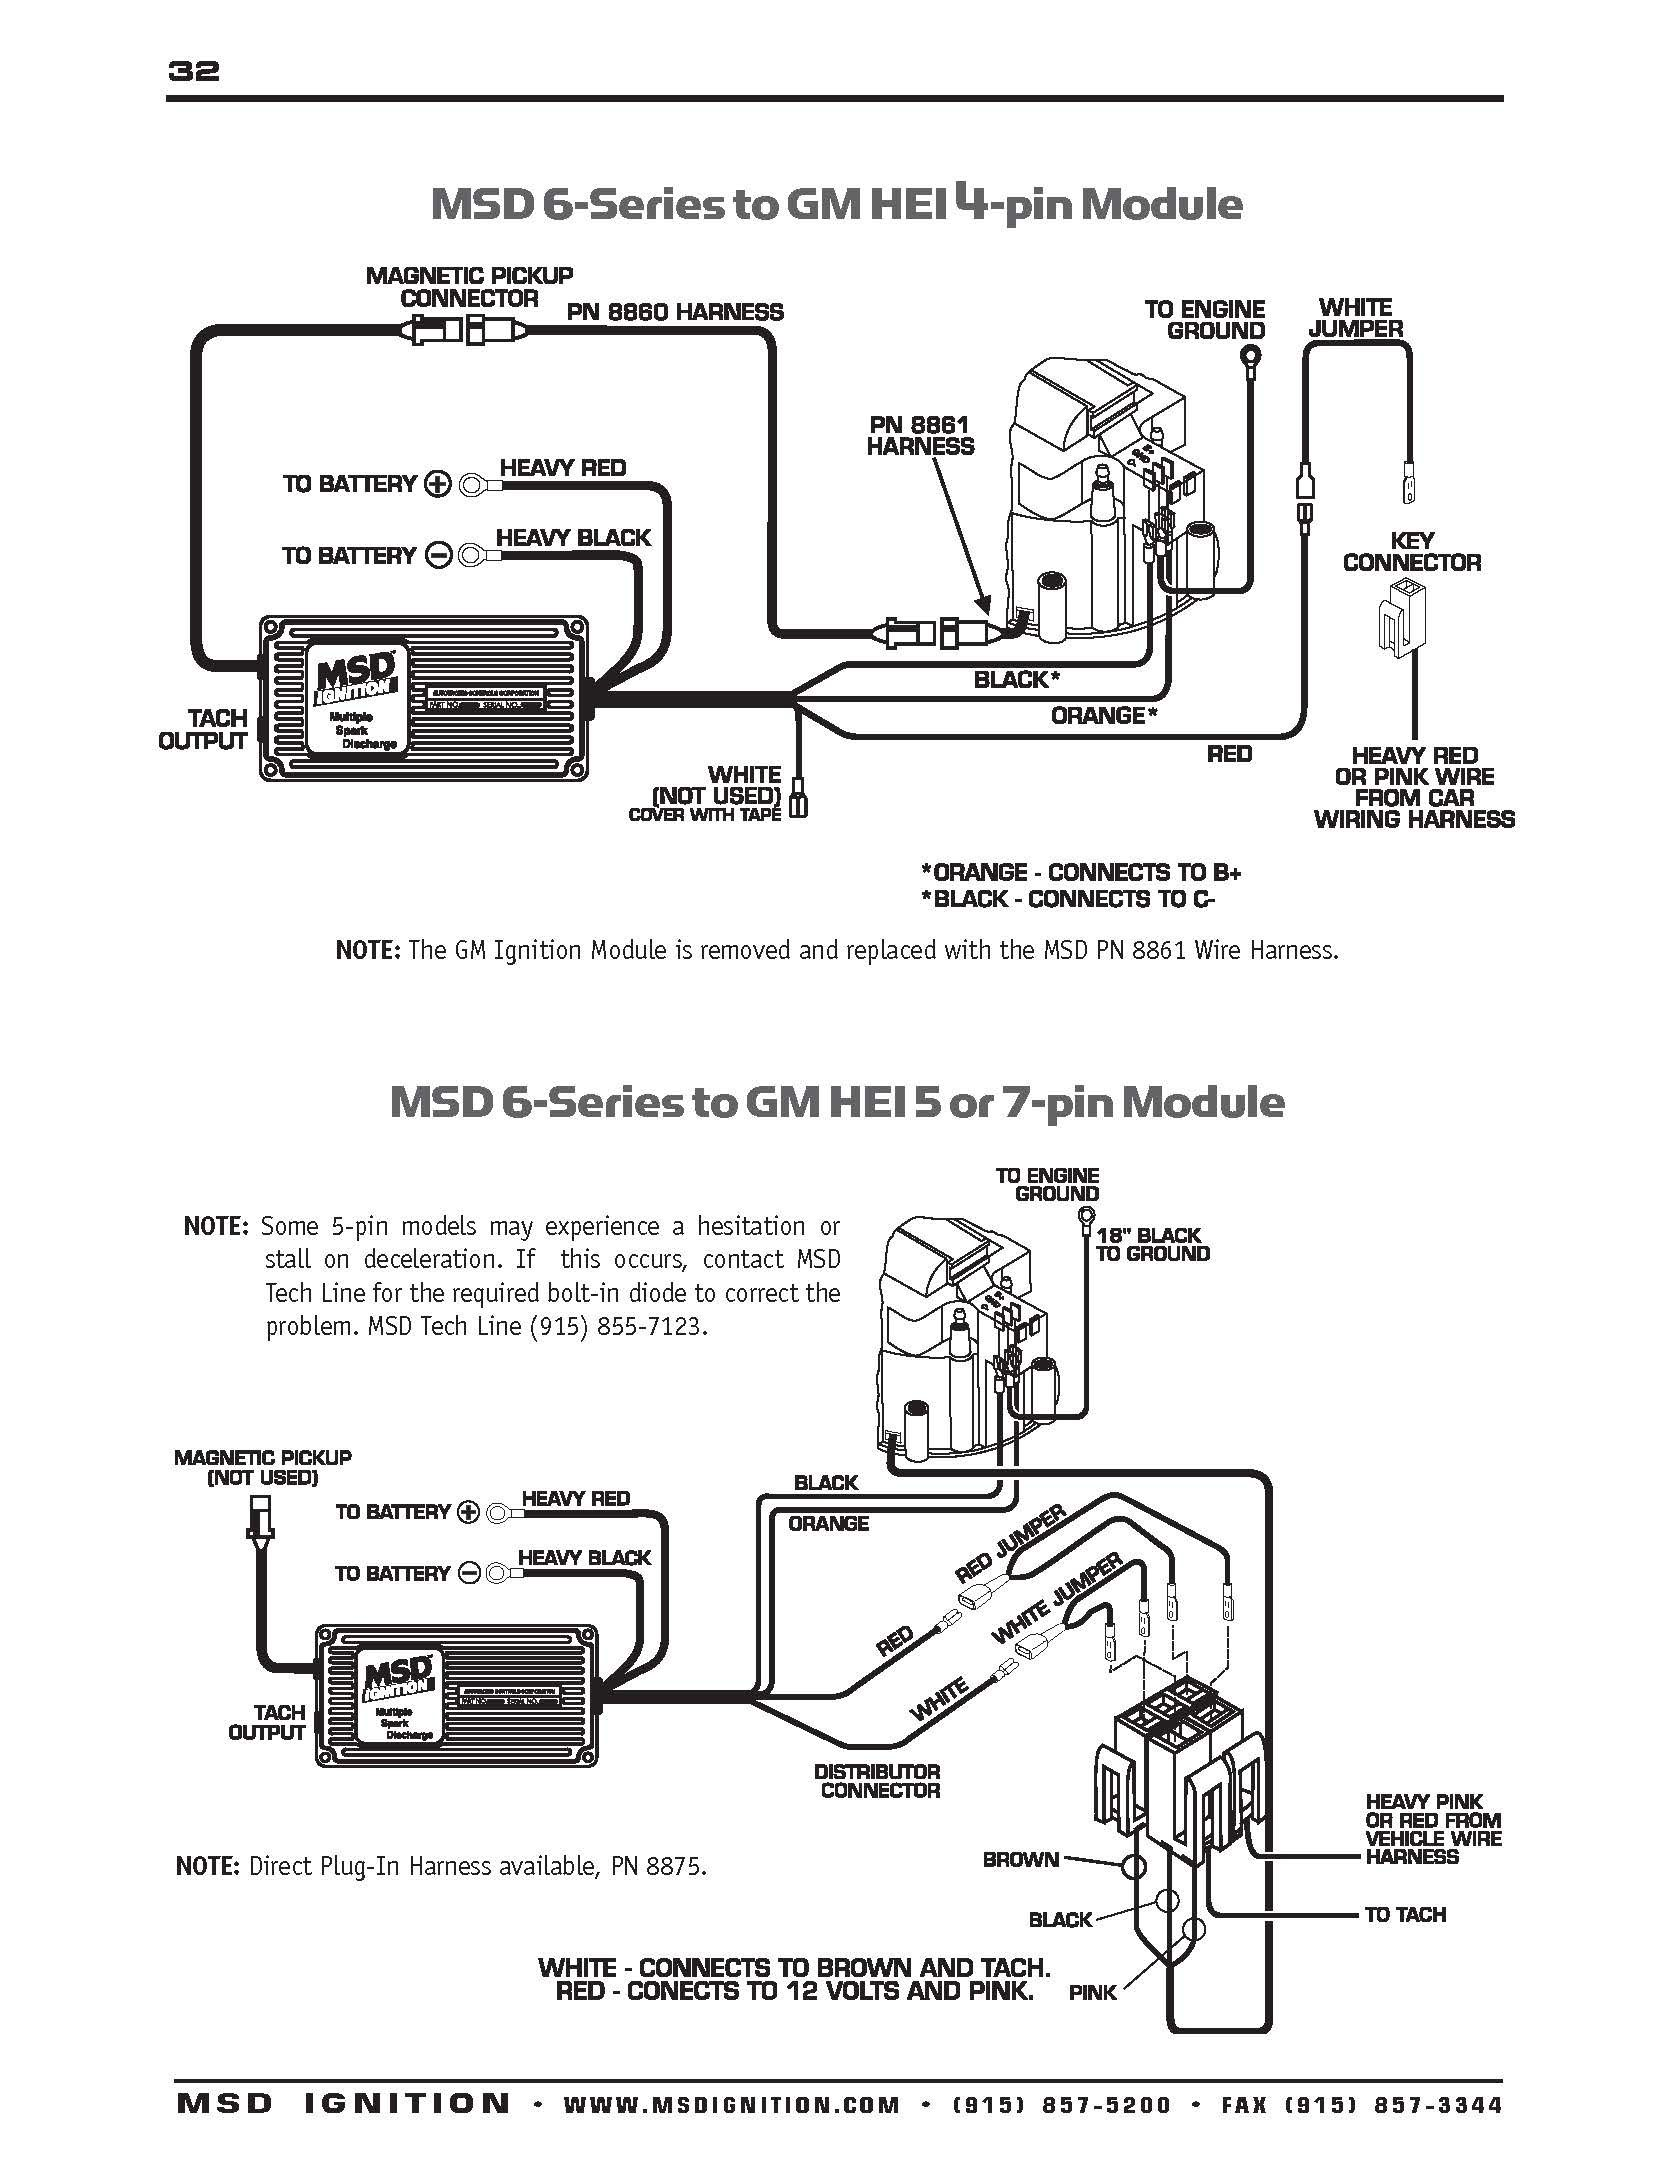 Msd Ignition Wiring Diagrams 1966 Chevelle Pinterest Cars GM Distributor Wiring  Diagram 1966 Gm Coil Wiring Diagram